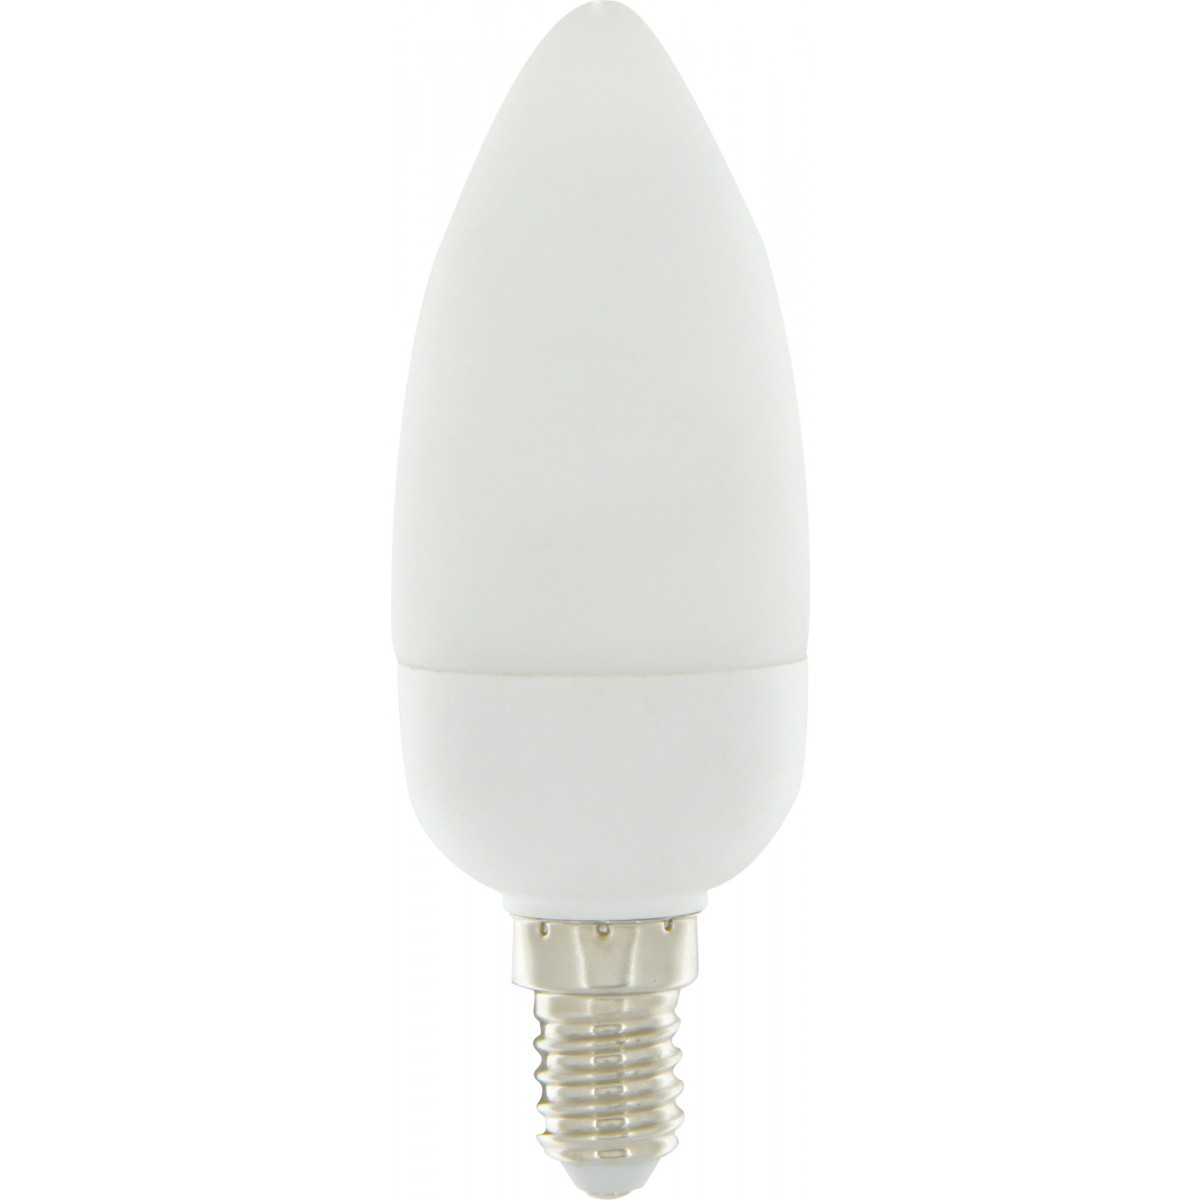 Ampoule fluocompact flamme E14 Dhome - 287 Lumens - 7 W